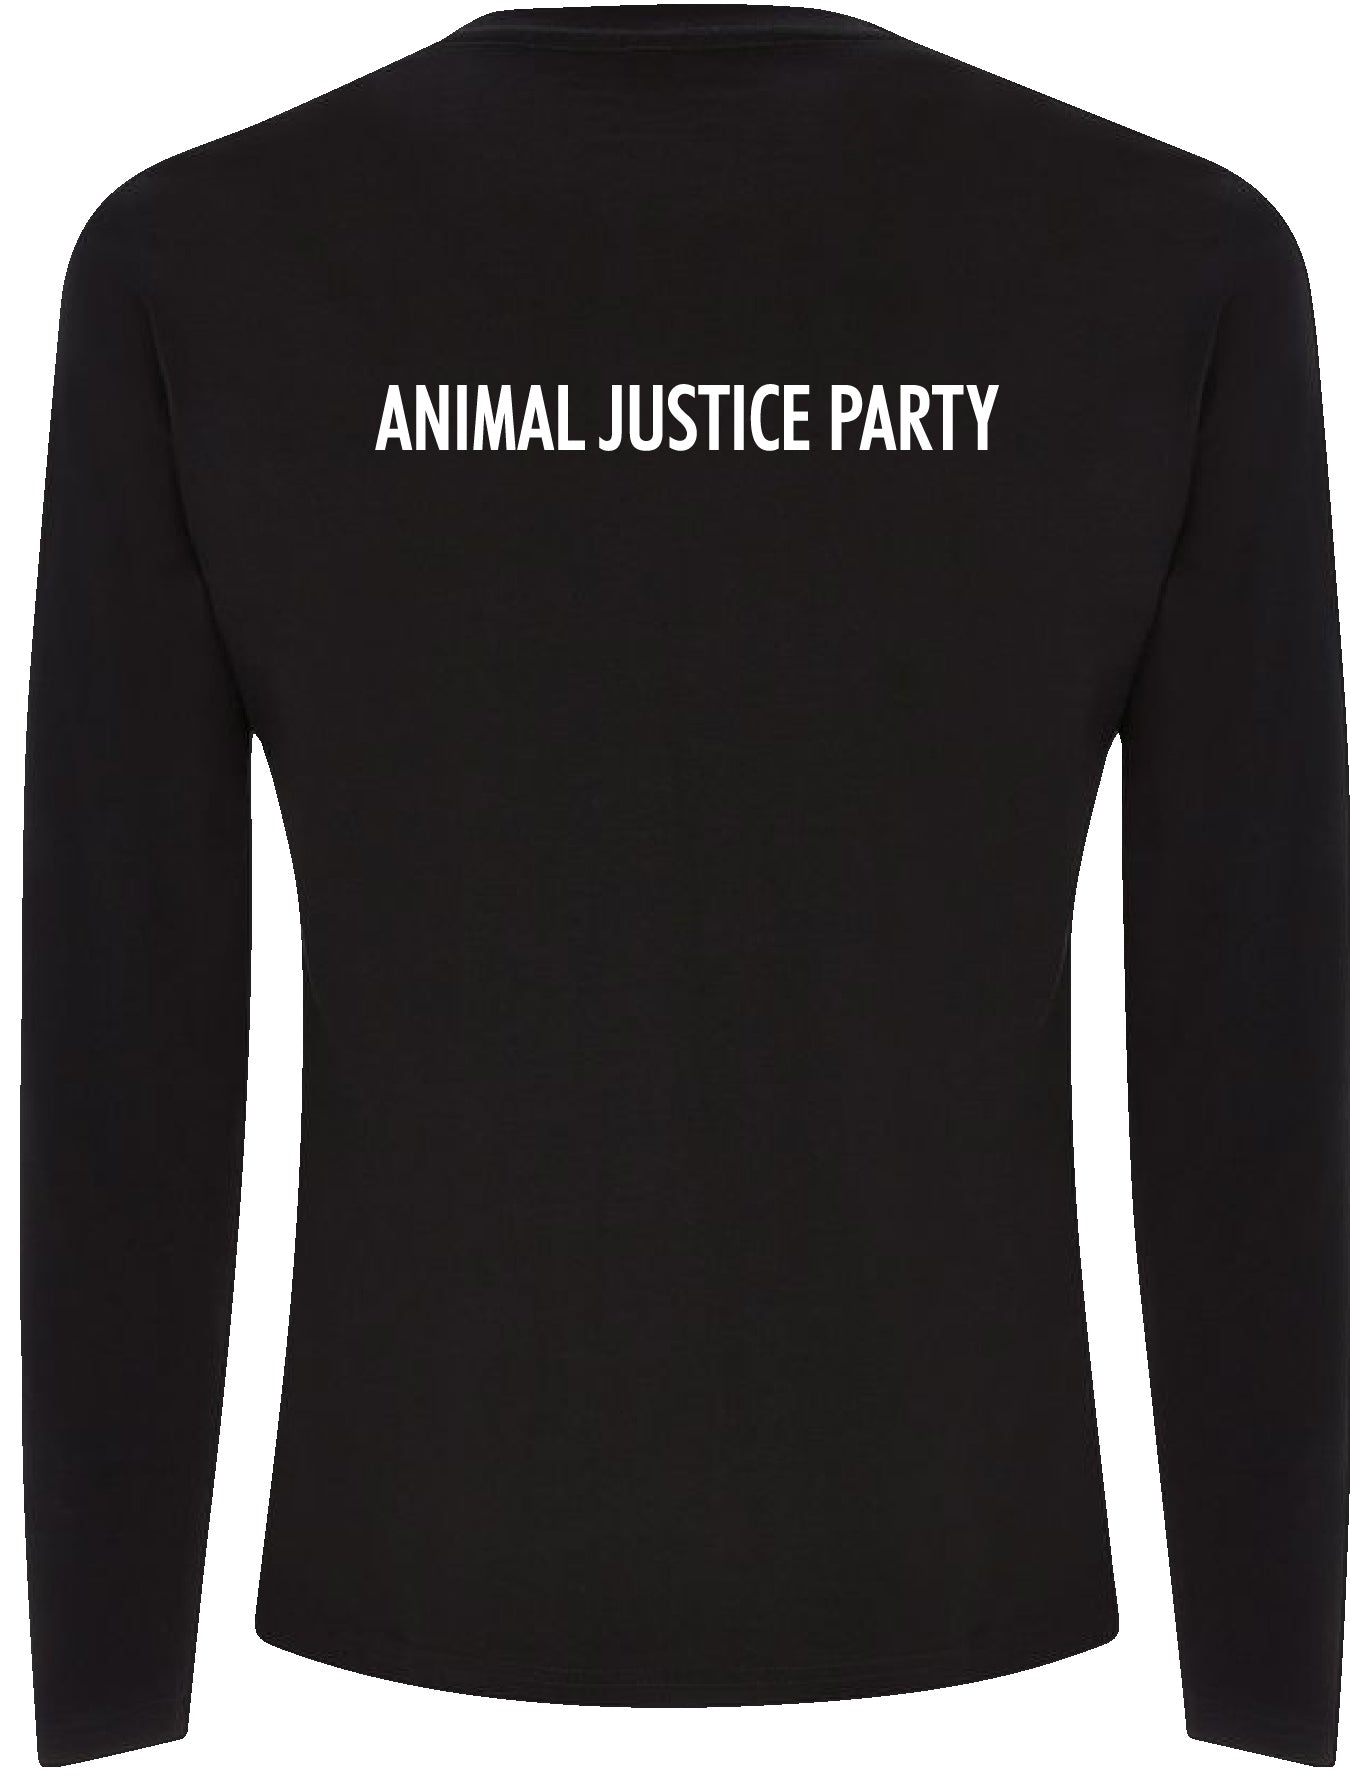 NEW! Men's Long Sleeve T-Shirt - Black